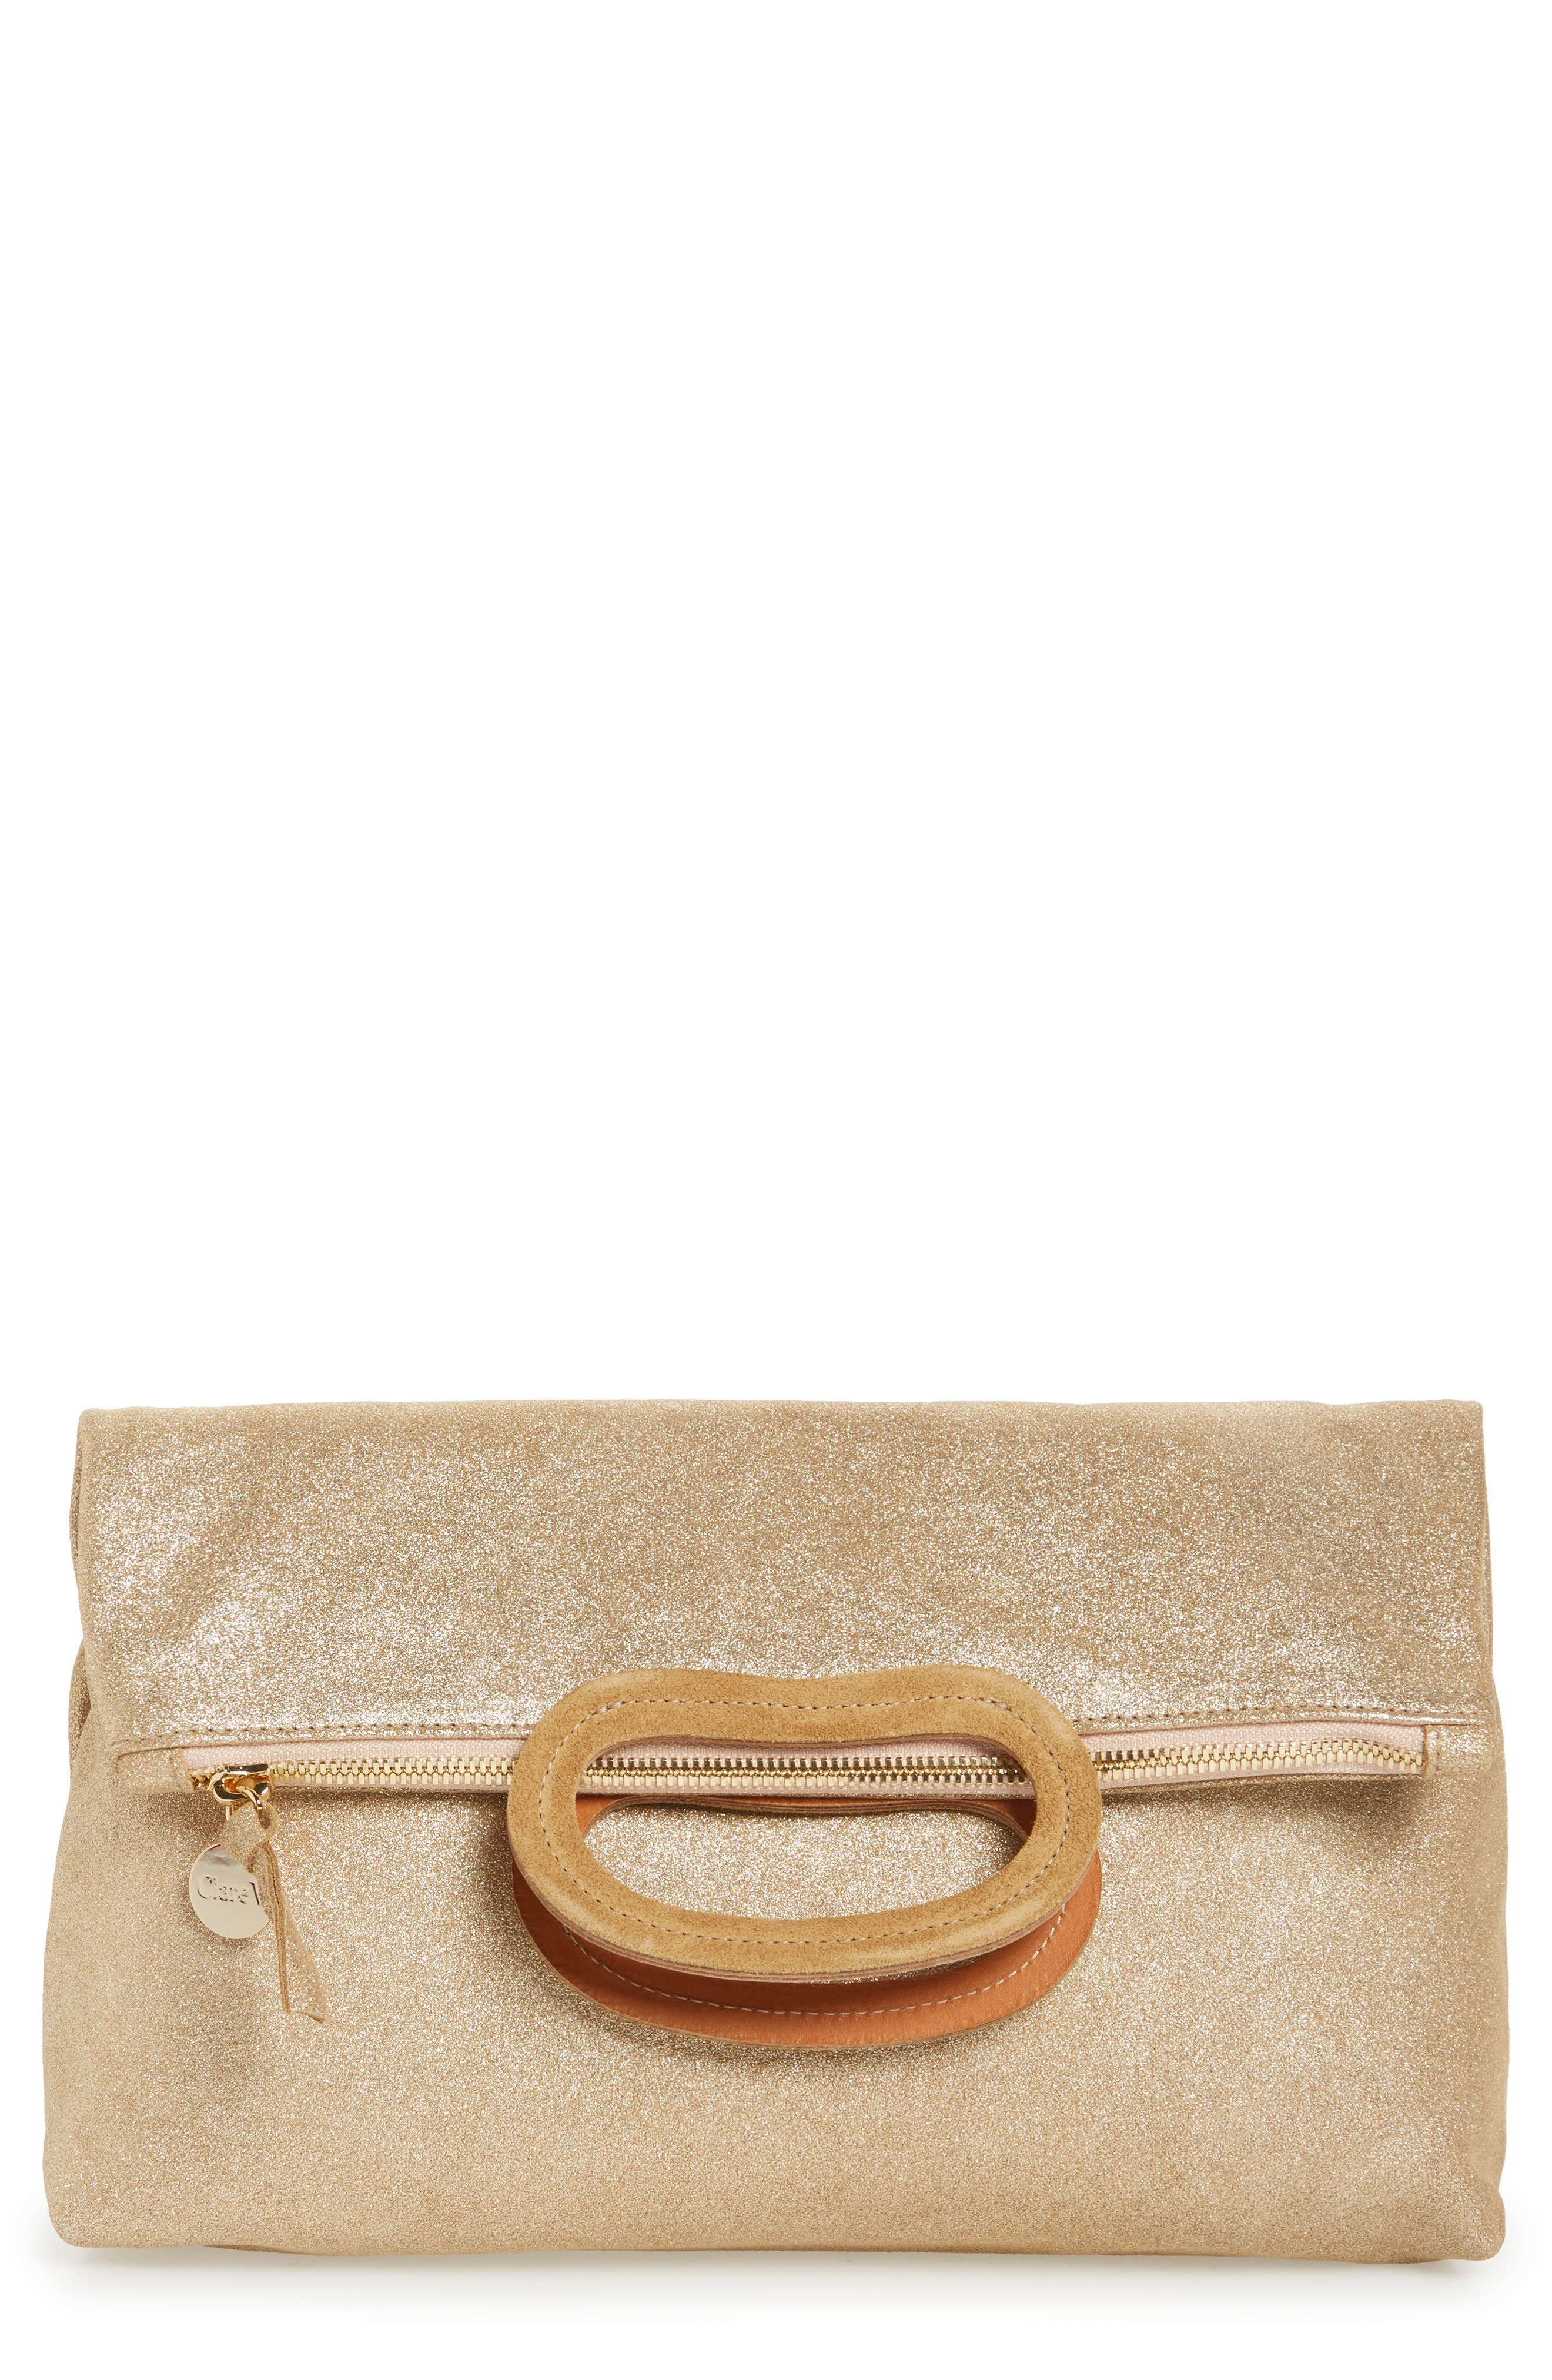 Marcelle Maison Leather Tote,                         Main,                         color, Gold Shimmer Suede